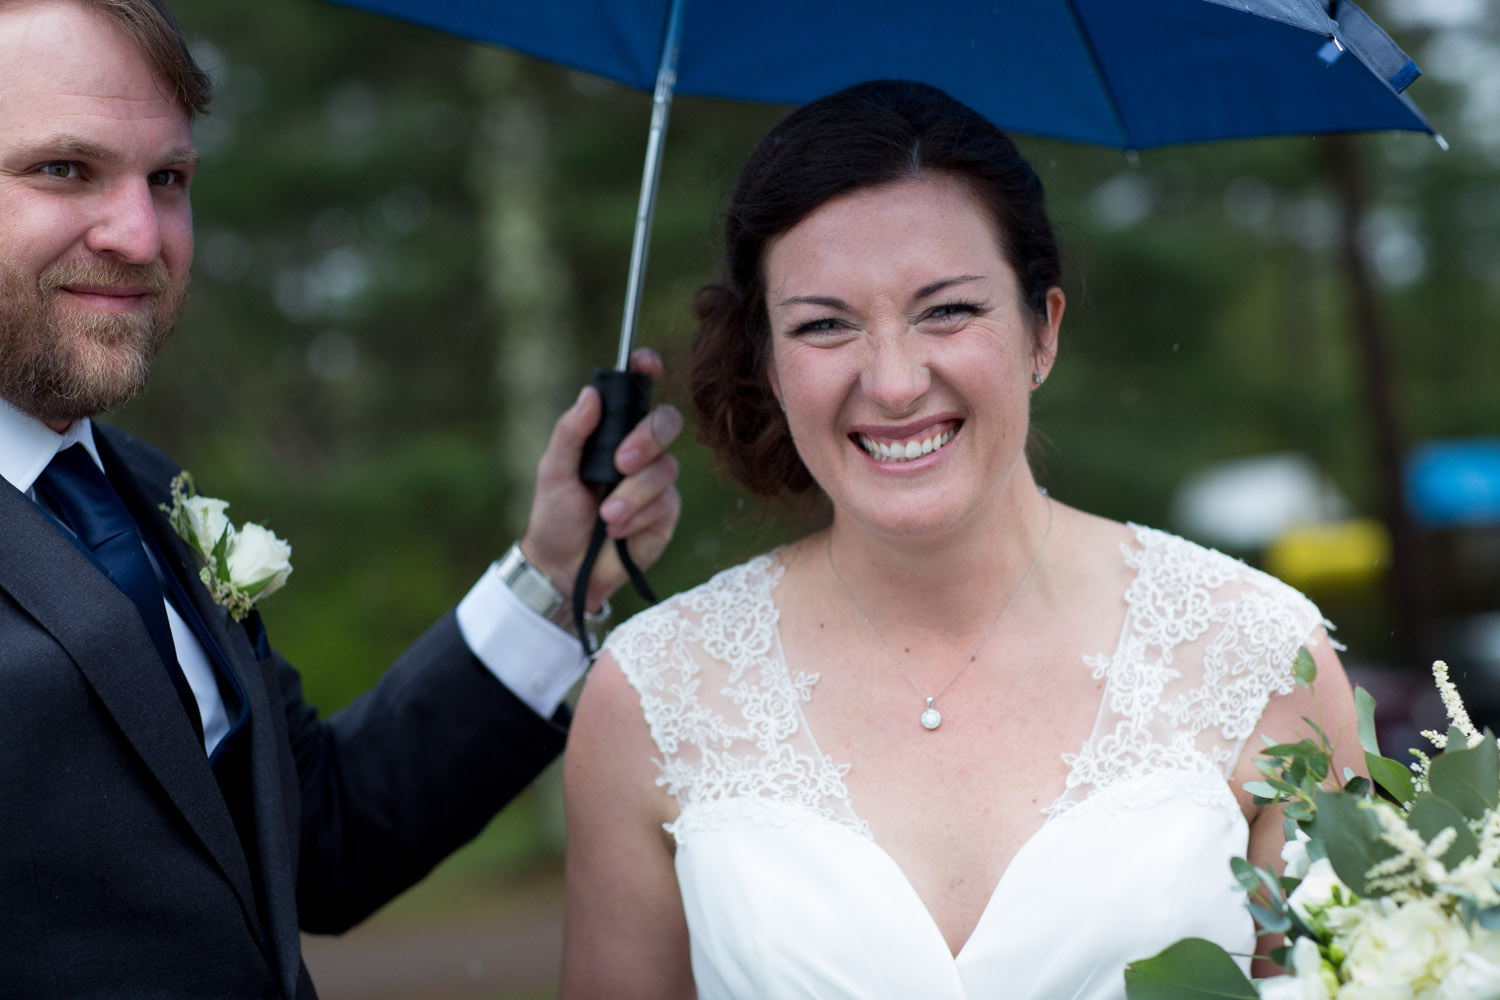 Pure joy post ceremony and dancing in the rain!